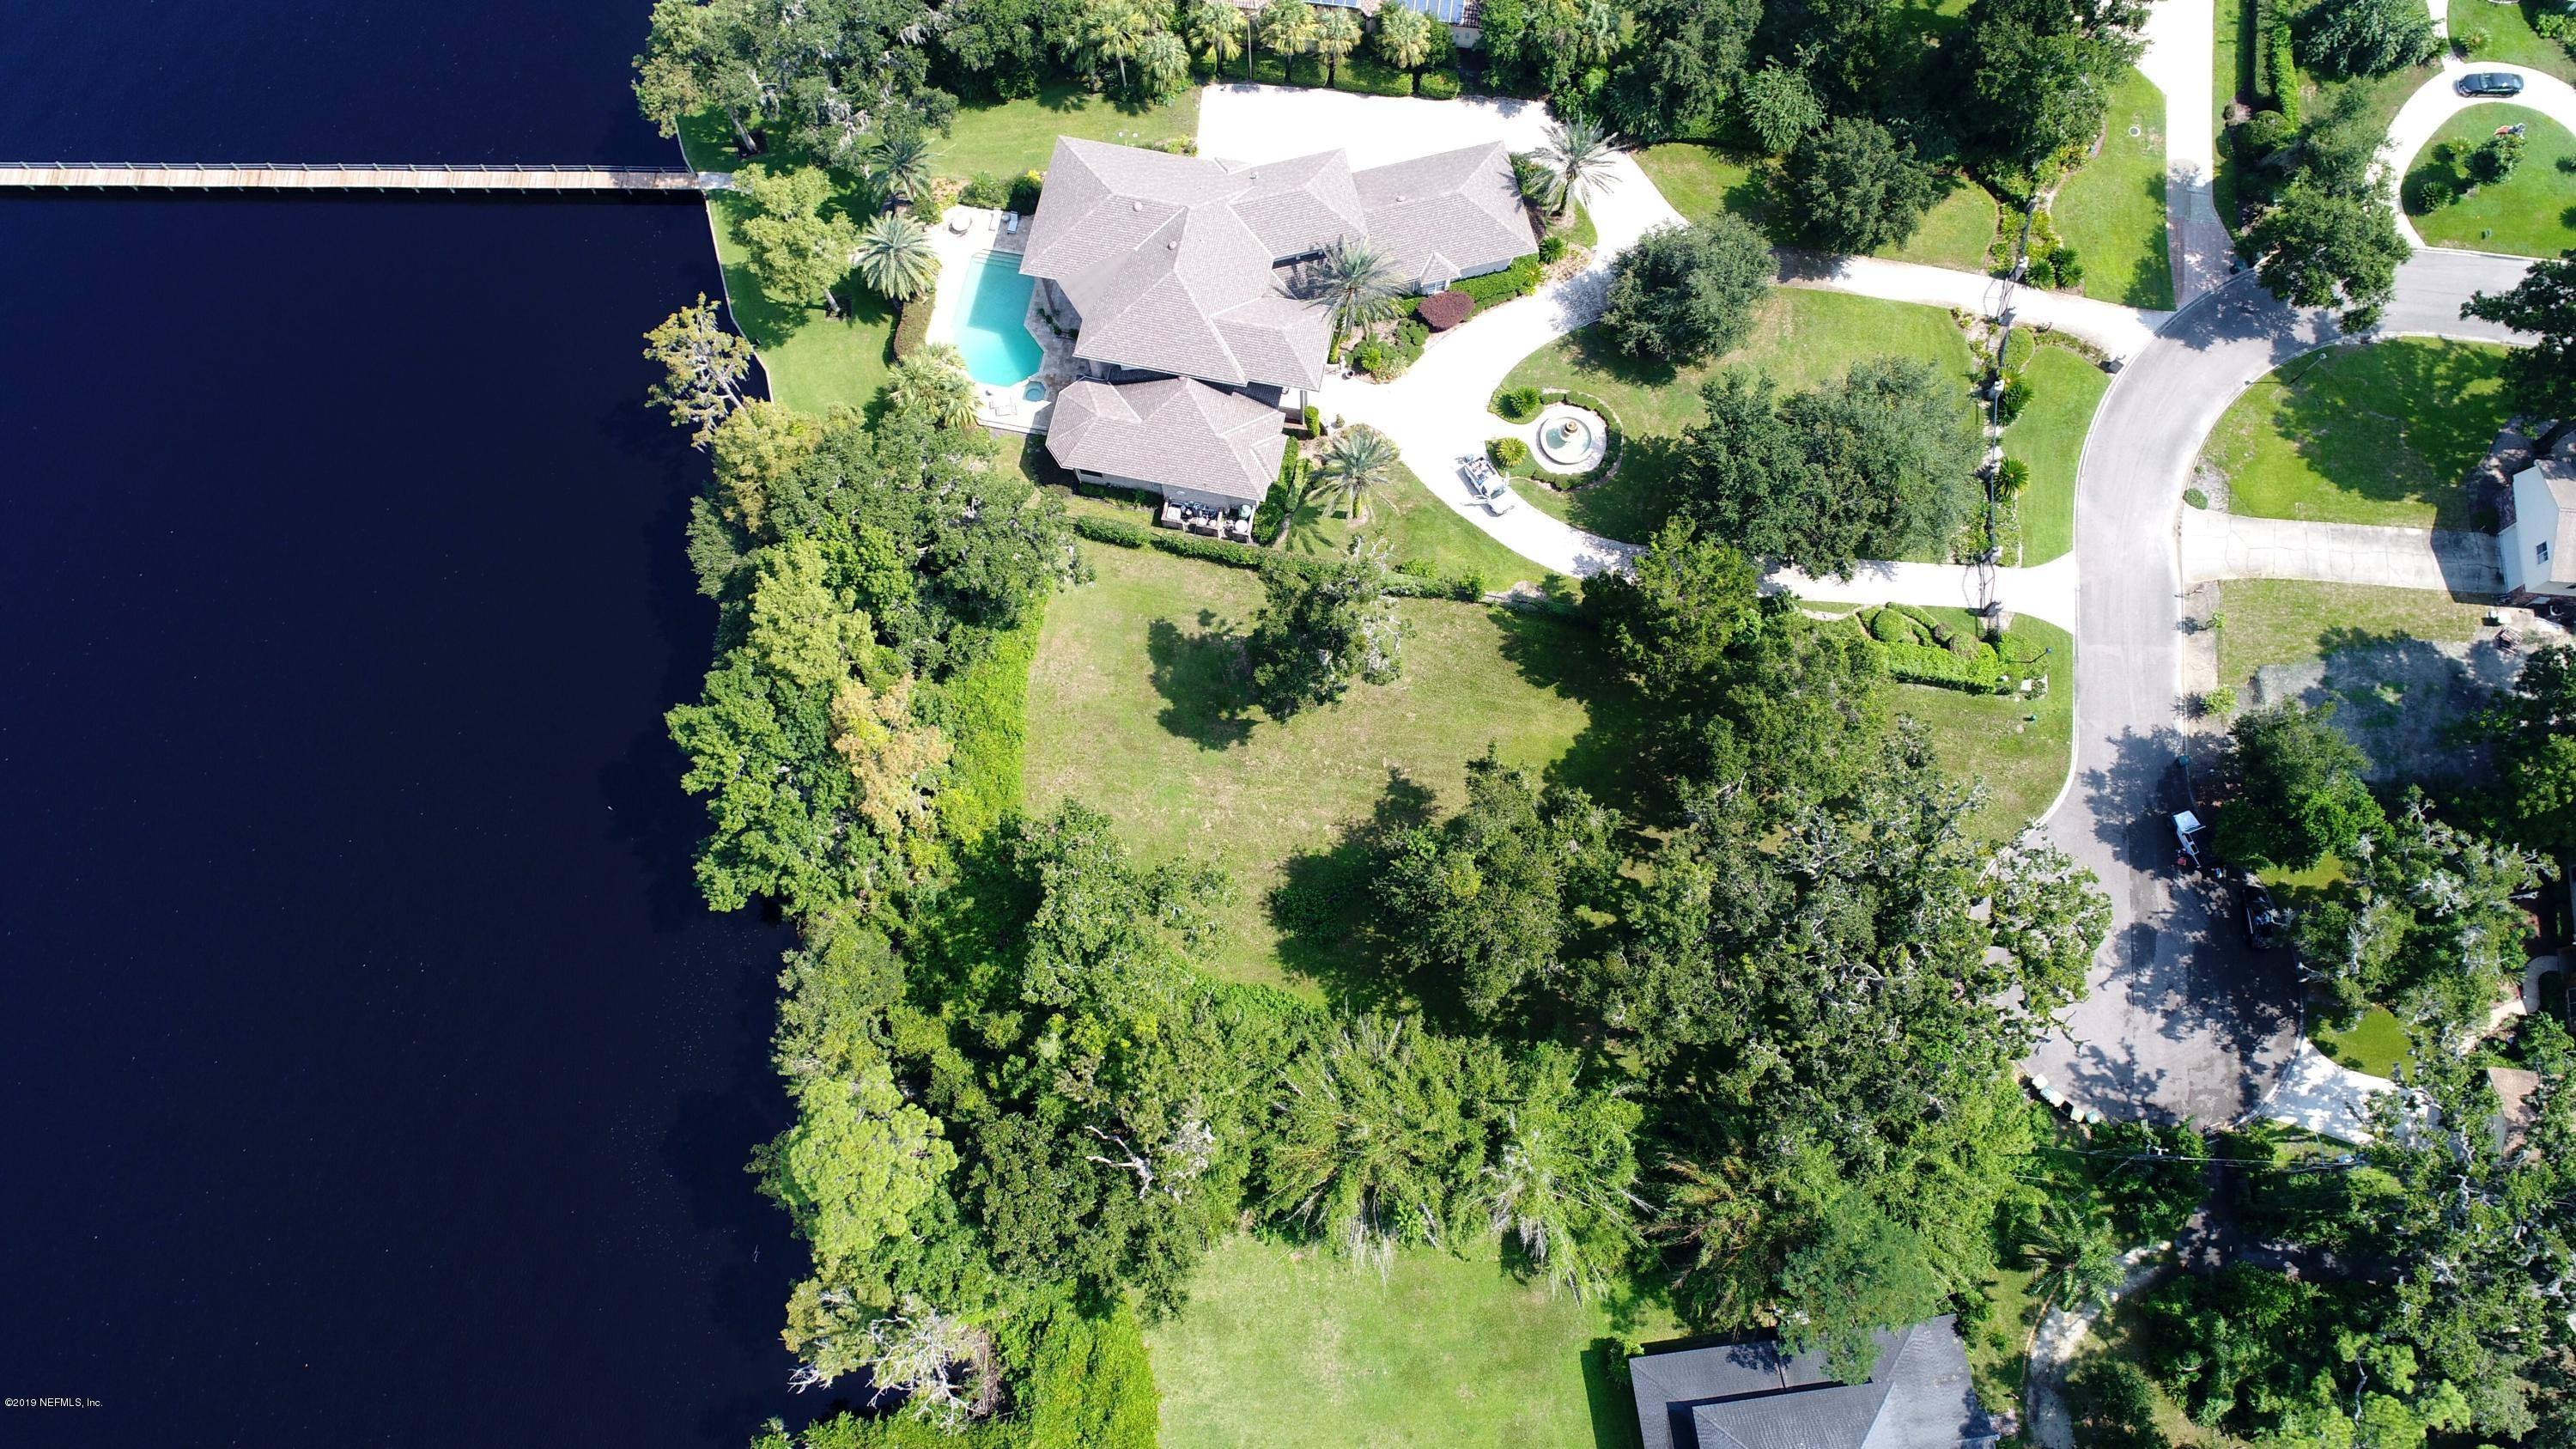 0 SPREADING OAKS, JACKSONVILLE, FLORIDA 32223, 4 Bedrooms Bedrooms, ,3 BathroomsBathrooms,Residential,For sale,SPREADING OAKS,981685